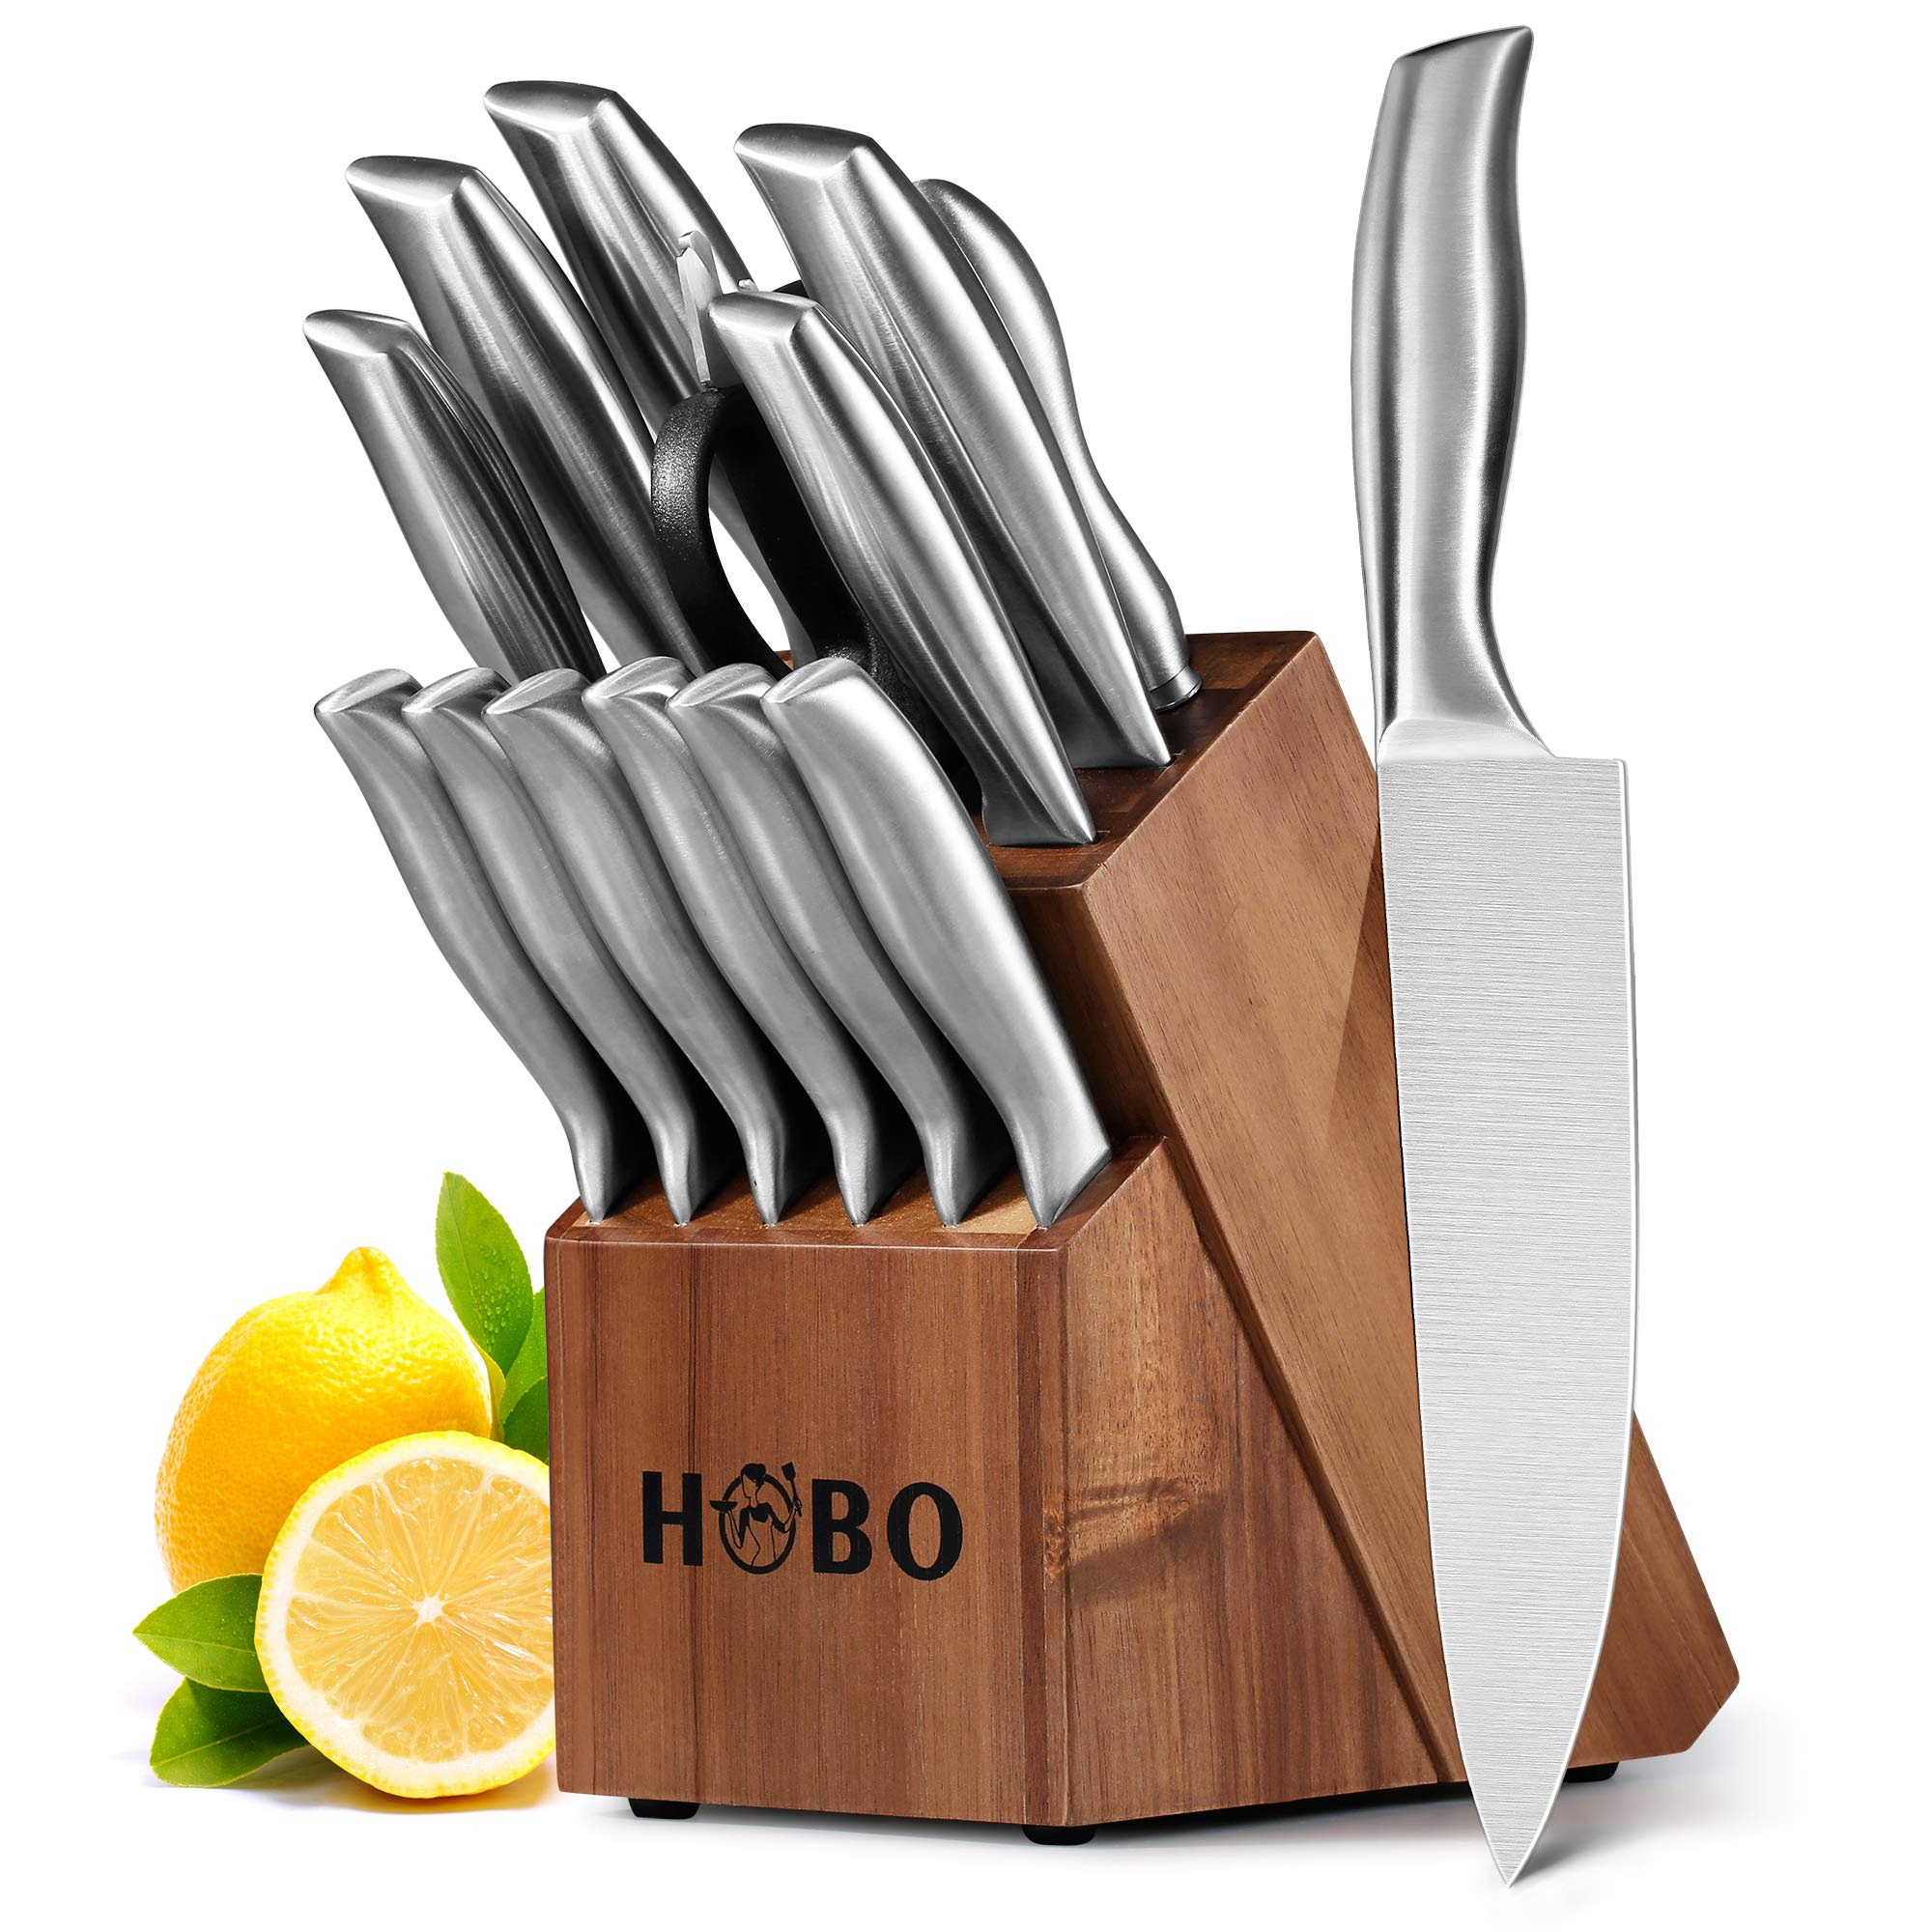 HOBO 2019 14-Piece German Stainless Steel Kitchen Scissors and Sharpener,Chef Knife Set with Block Wooden, Knives, Silver